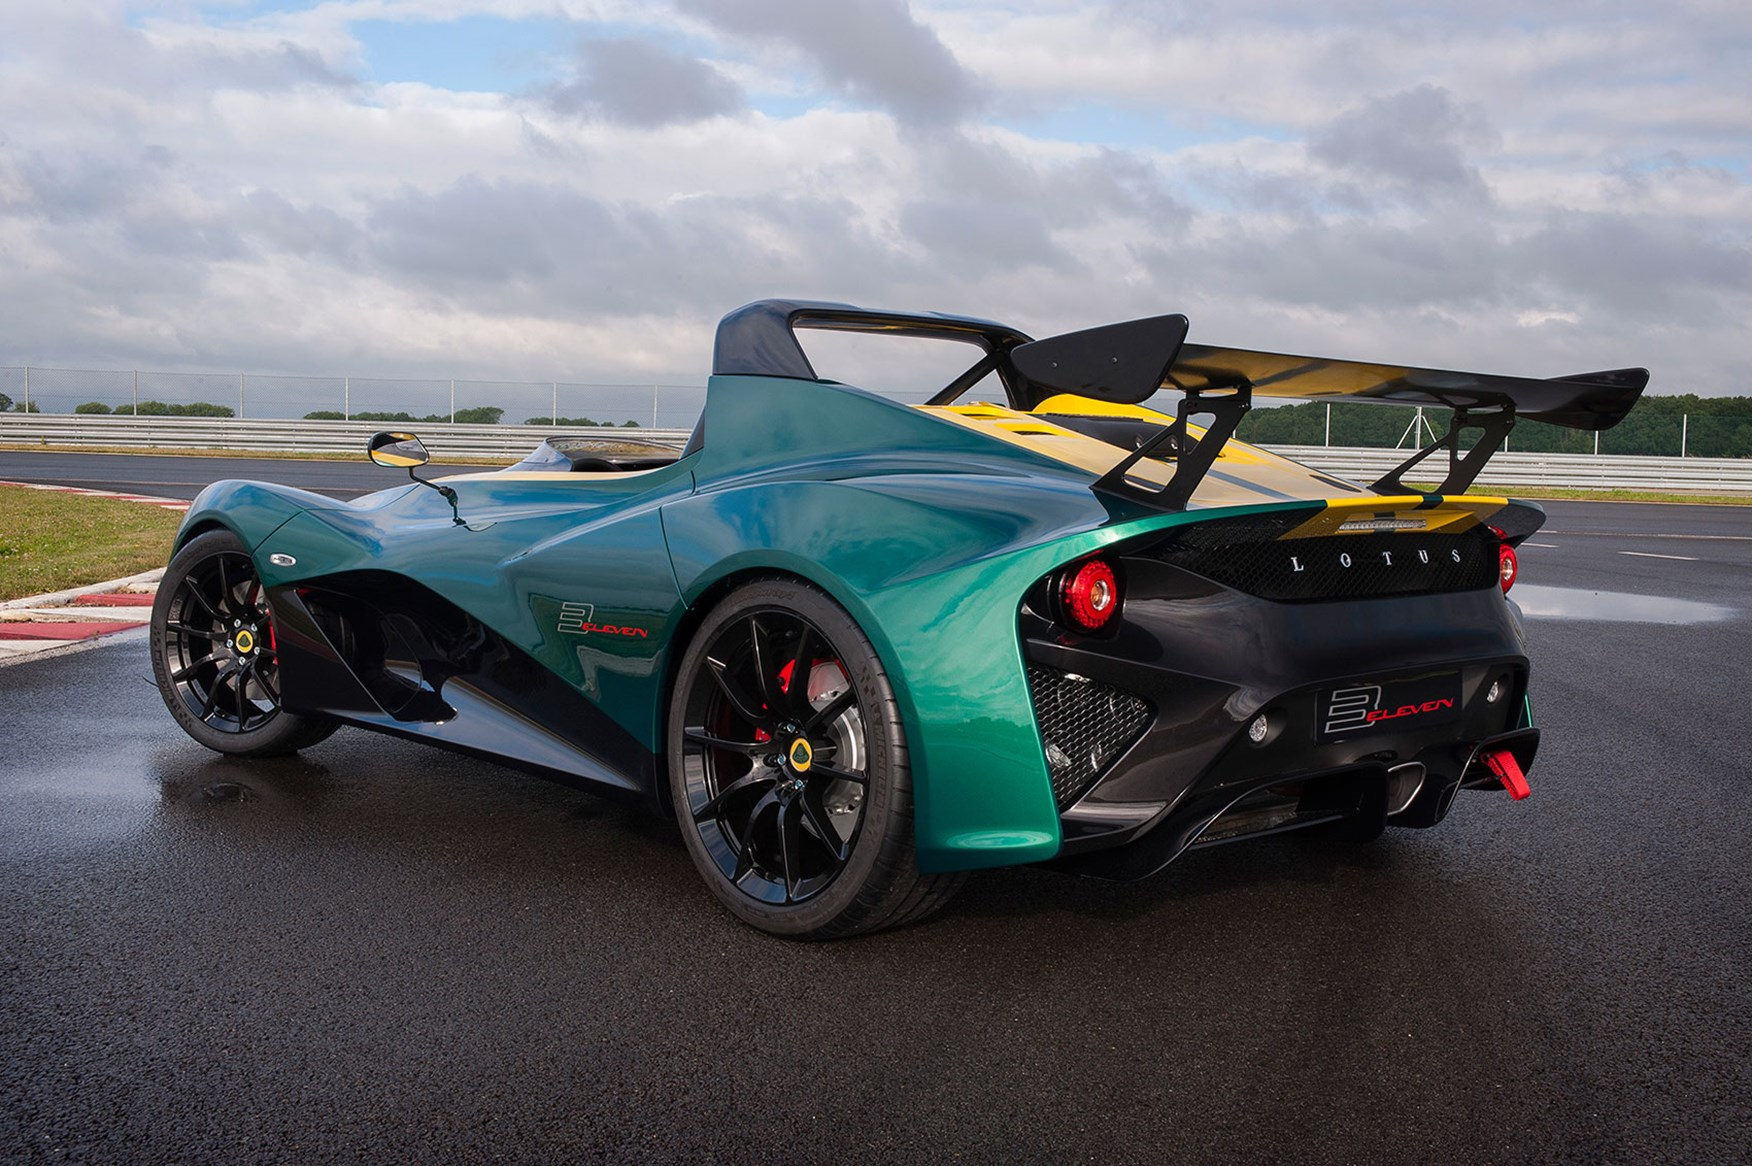 Lotus 3-Eleven unveiled: the fastest Lotus ever! by CAR ...